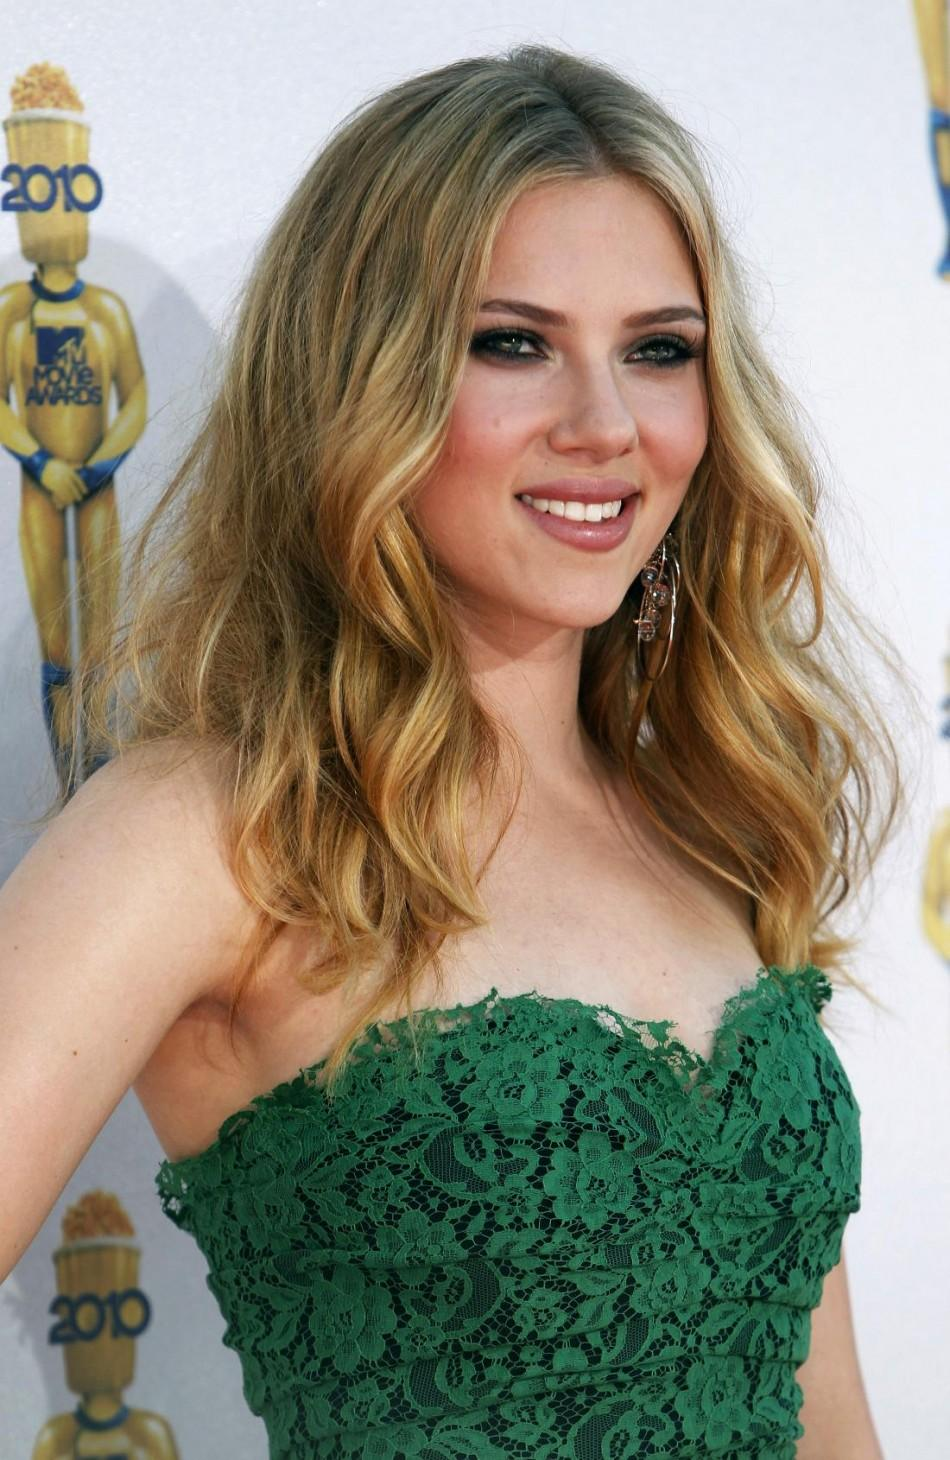 Actress Scarlett Johansson arrives at the 2010 MTV Movie Awards in Los Angeles